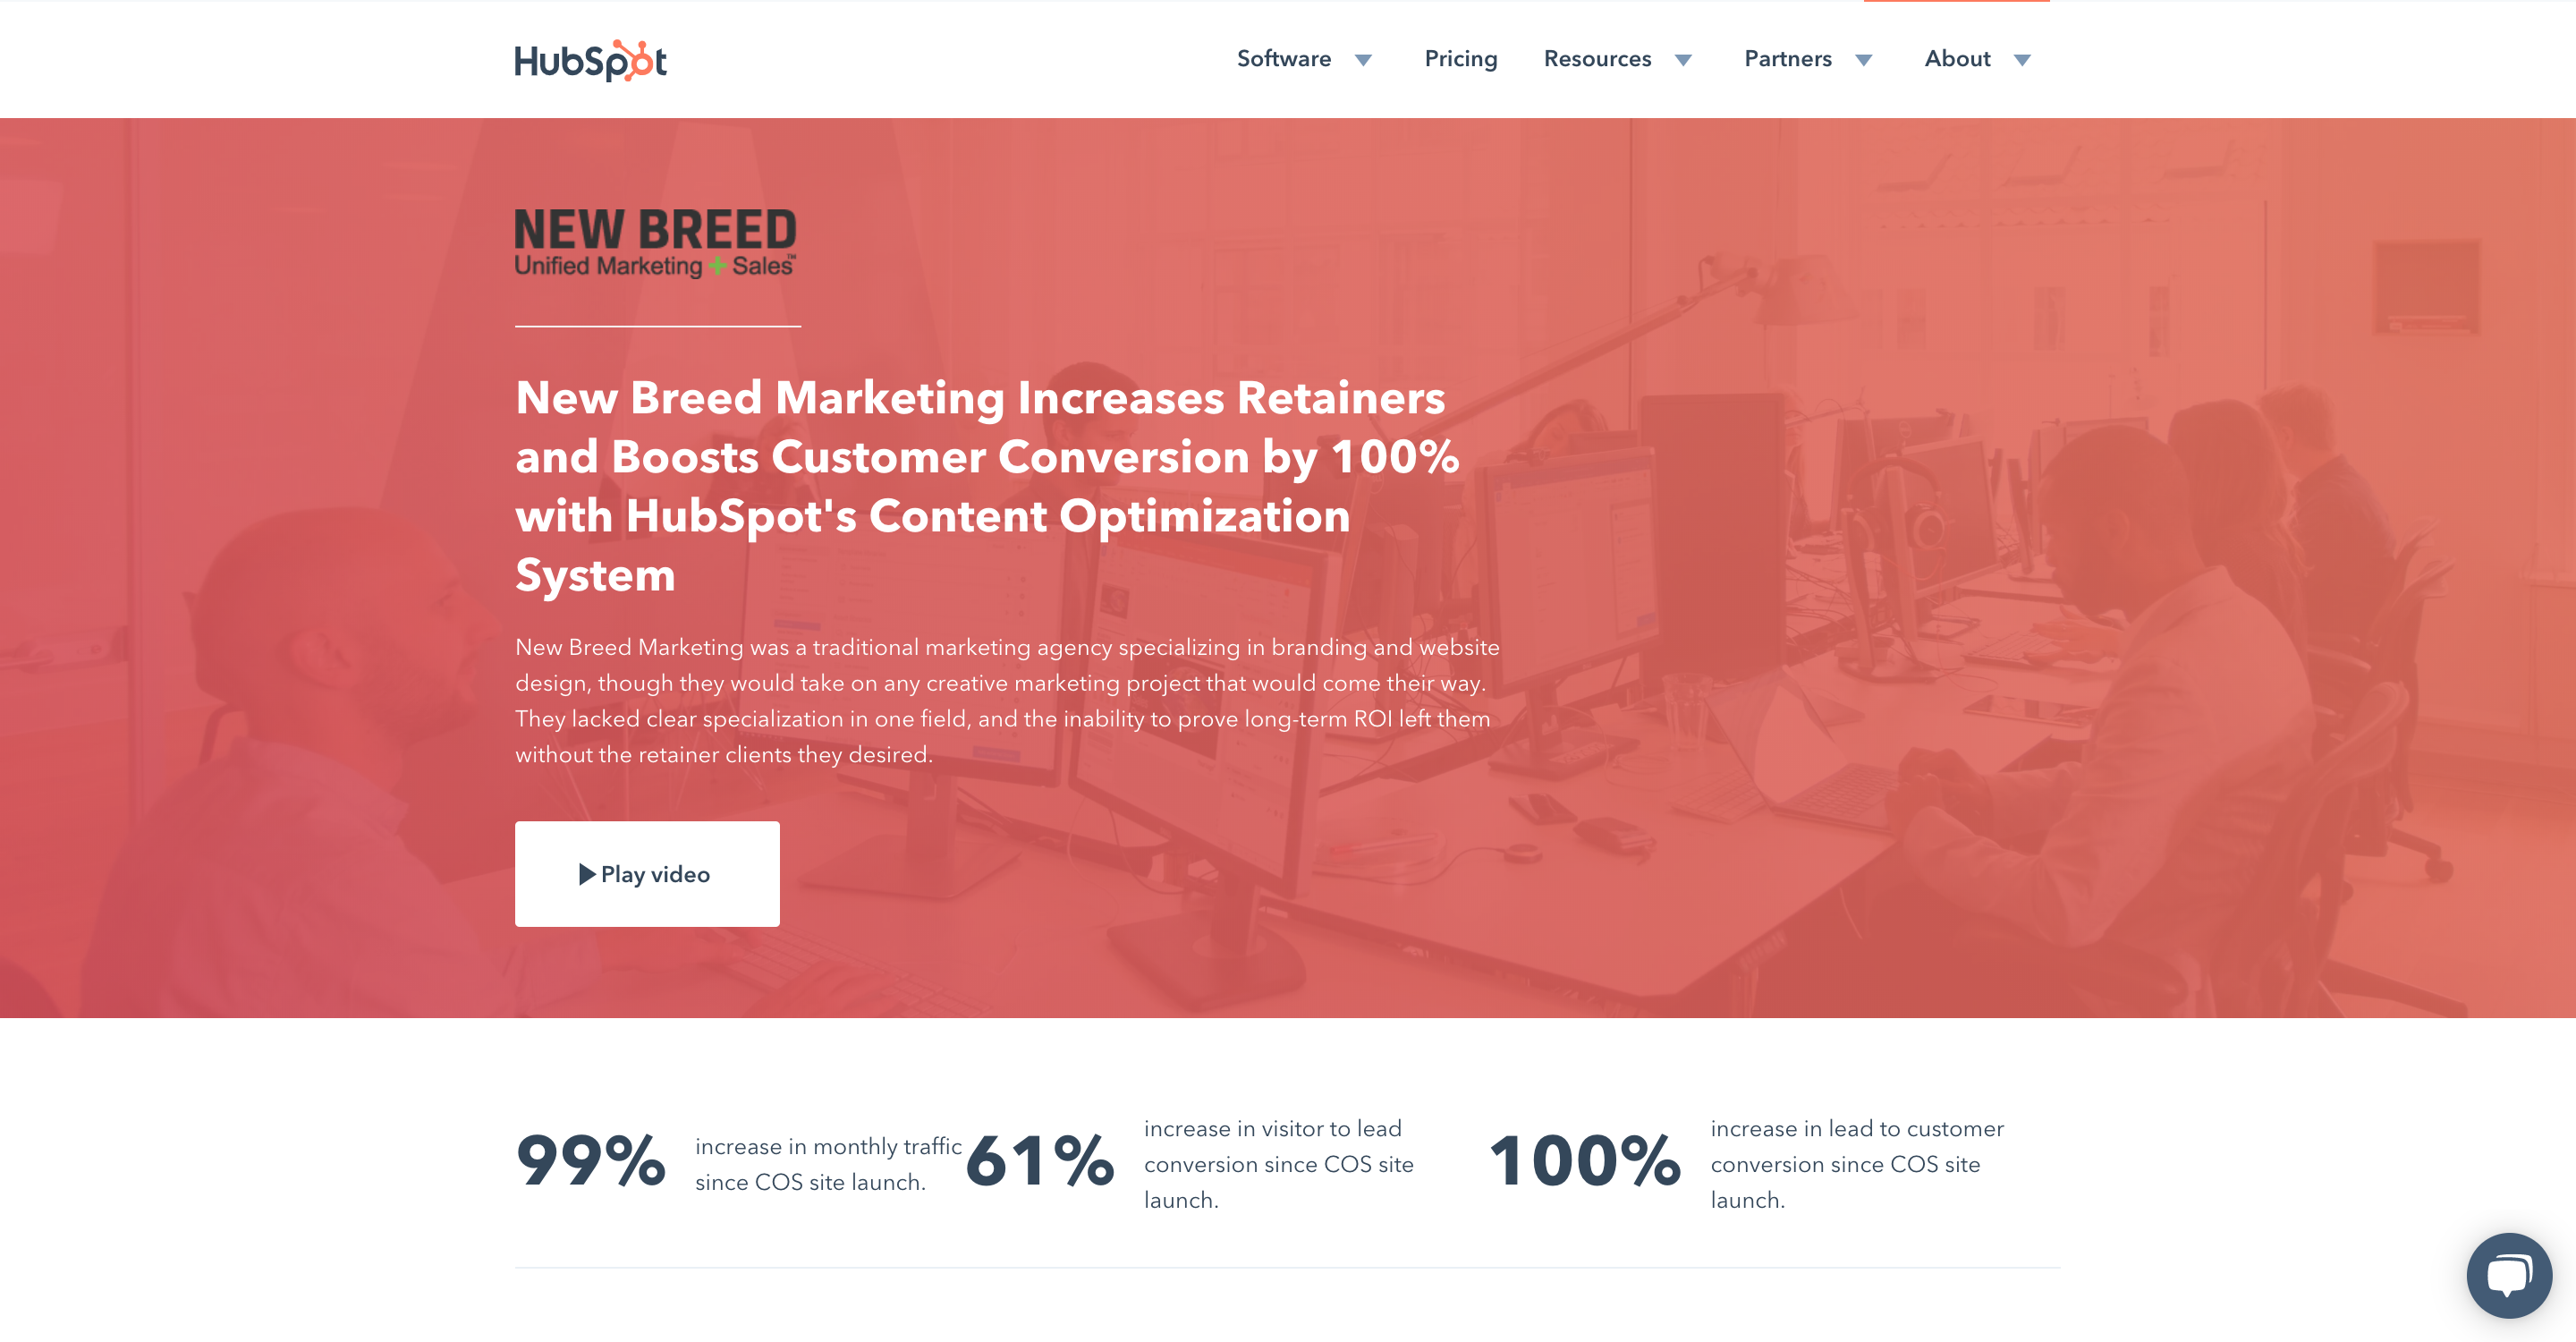 hubspot_case_study_about_new_breed